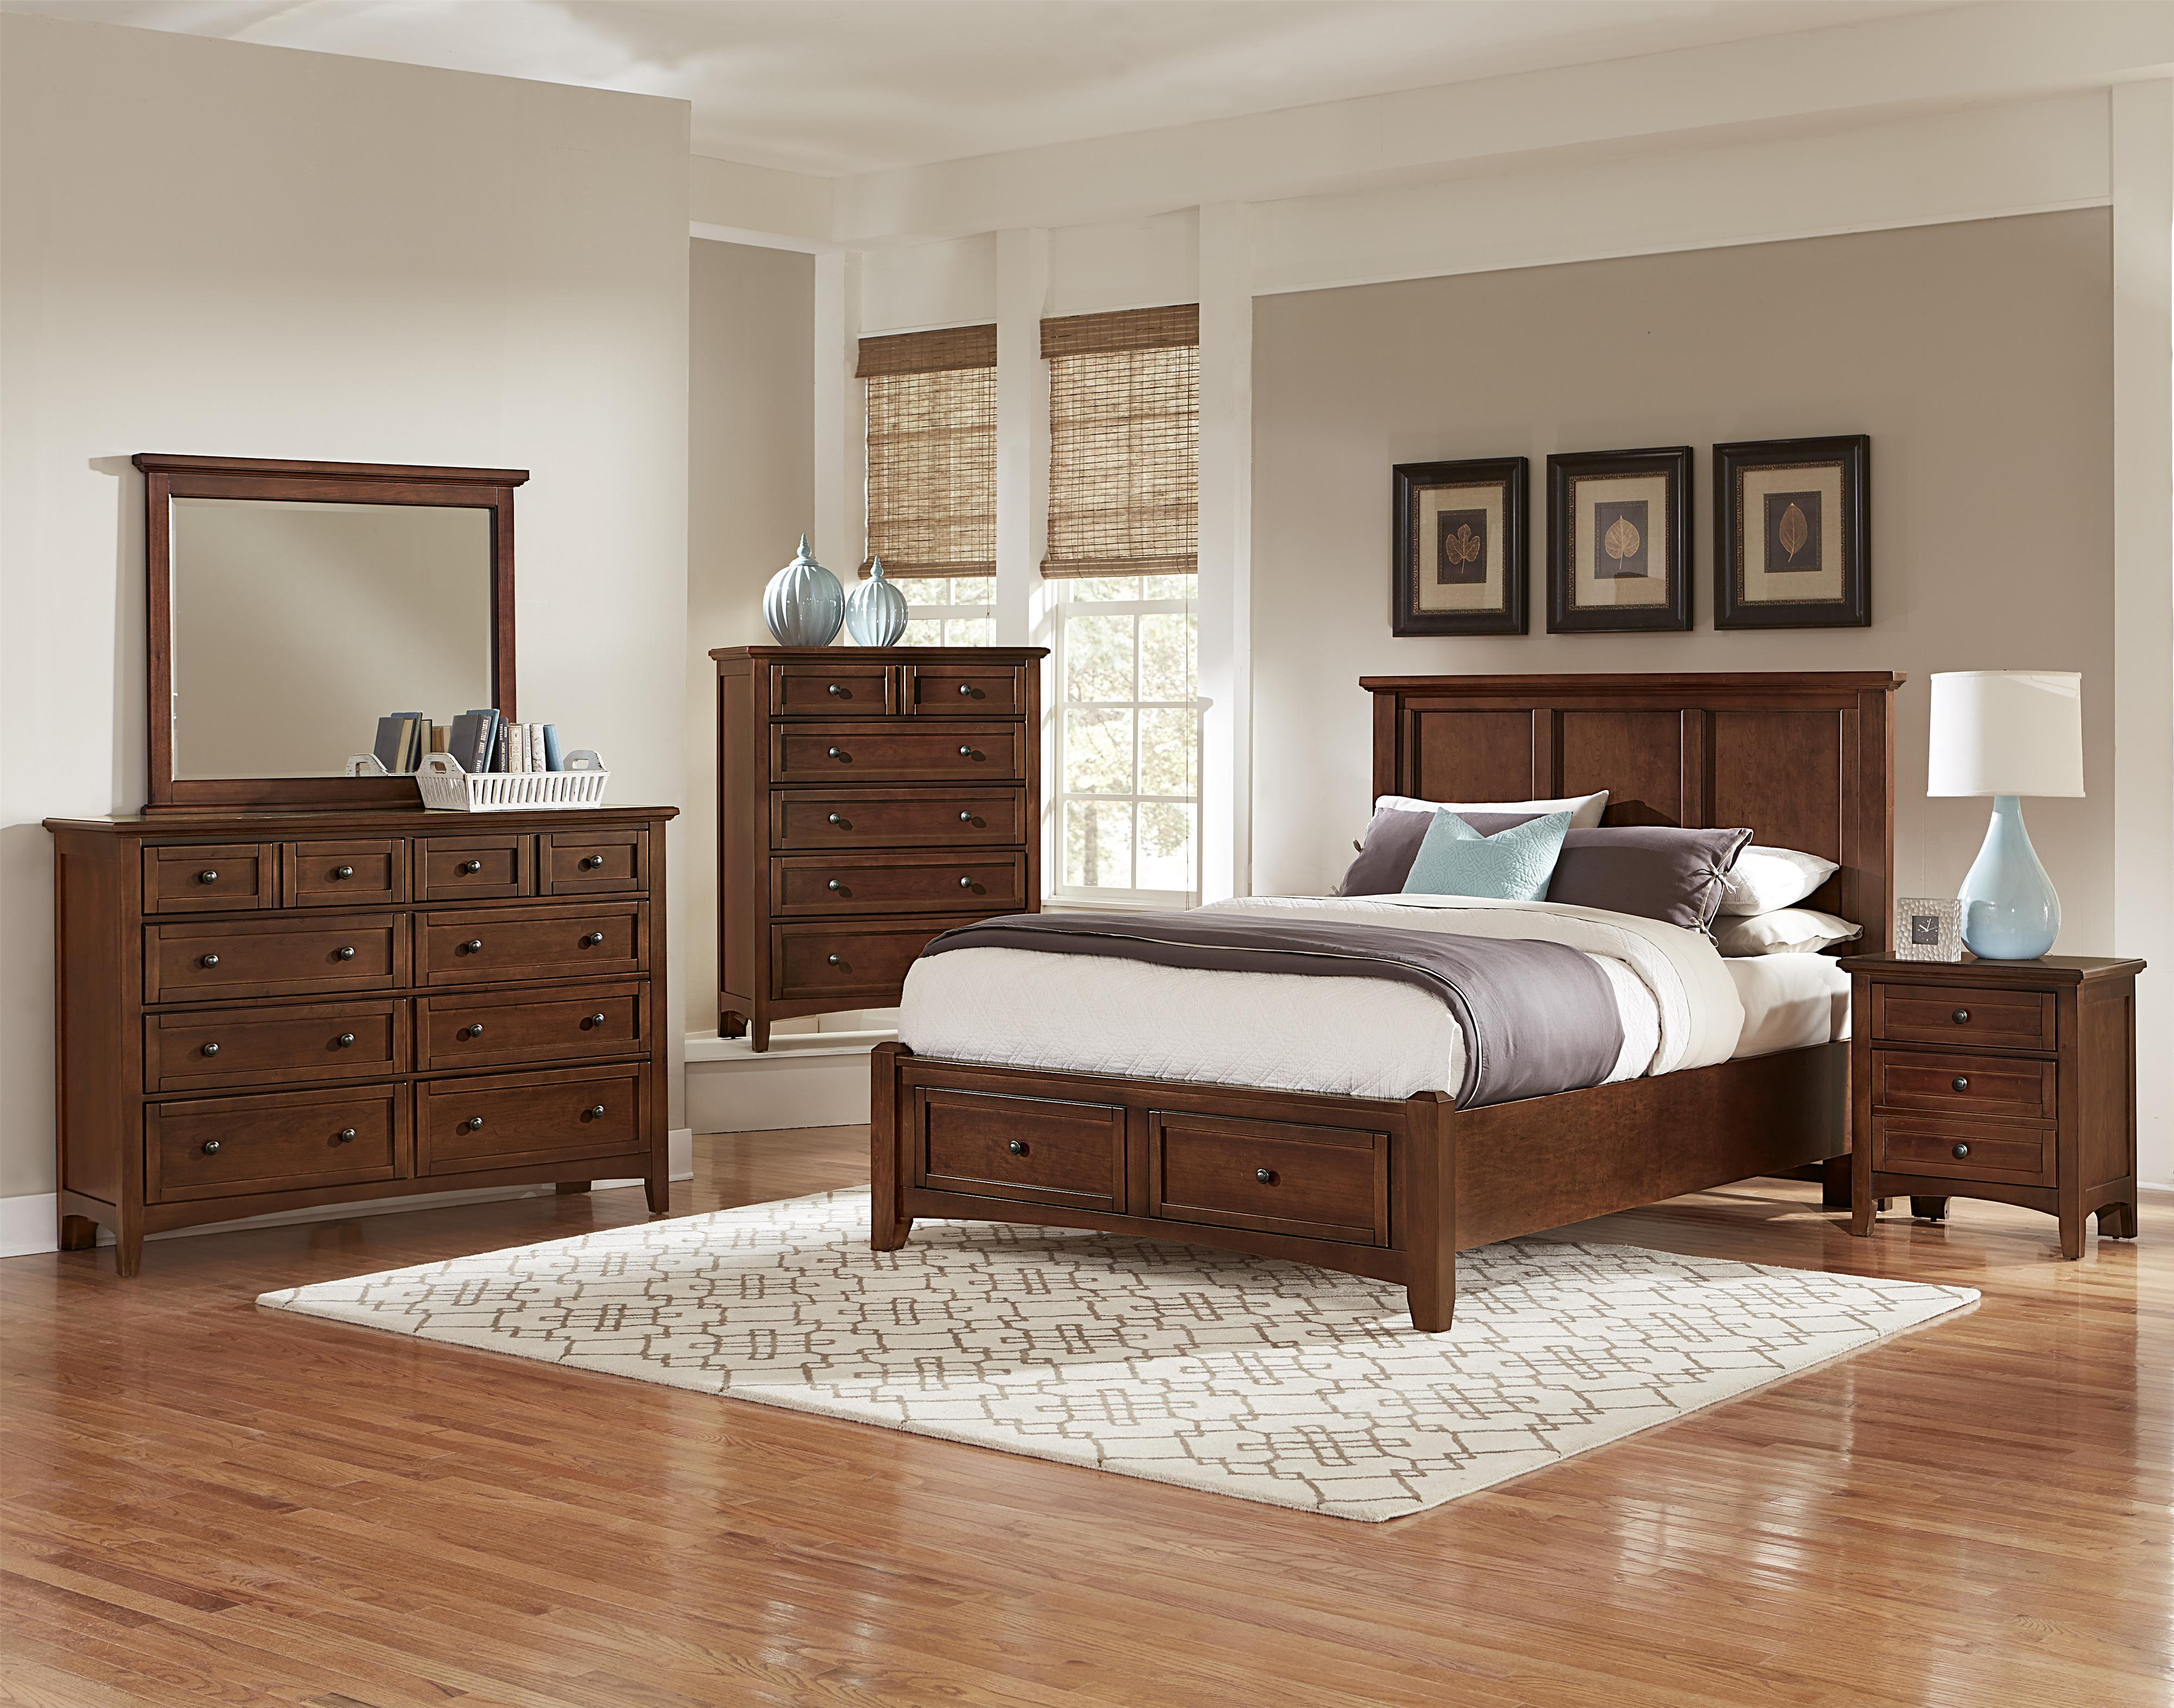 Bonanza King Bedroom Group by Vaughan Bassett at Lindy's Furniture Company